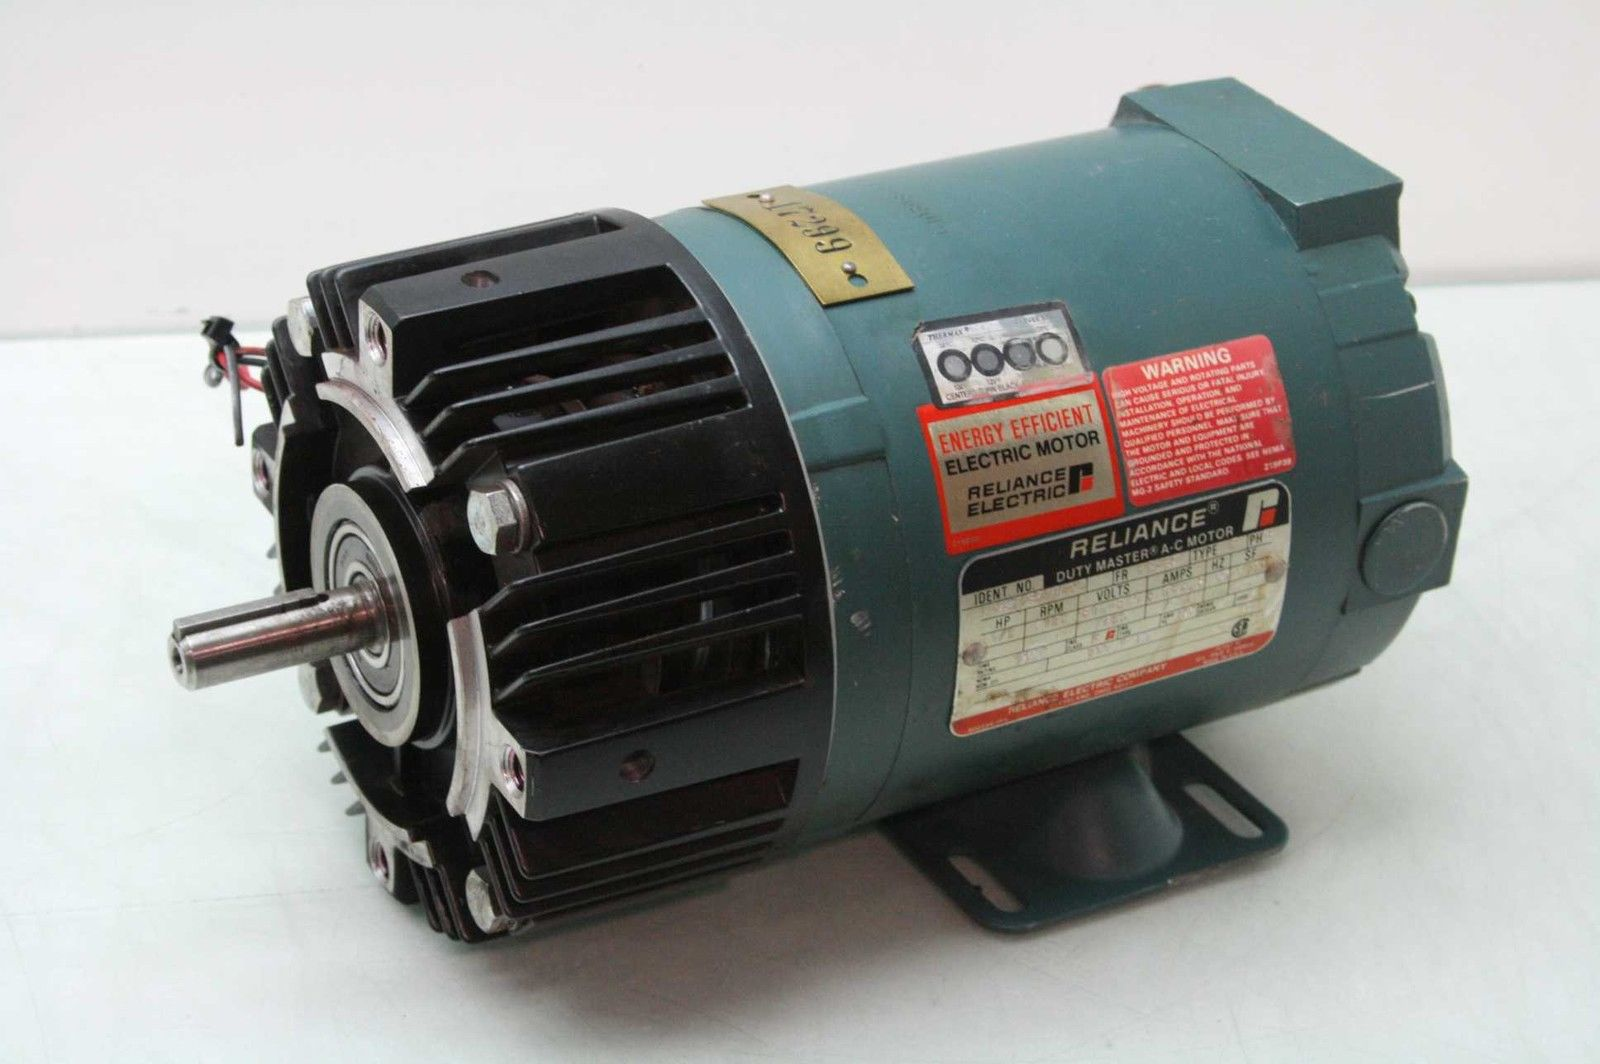 Reliance P56H1320W-NS AC Motor 1/2 HP Warner EM50-20 Clutch/Brake Nema 56C  Frame - Used